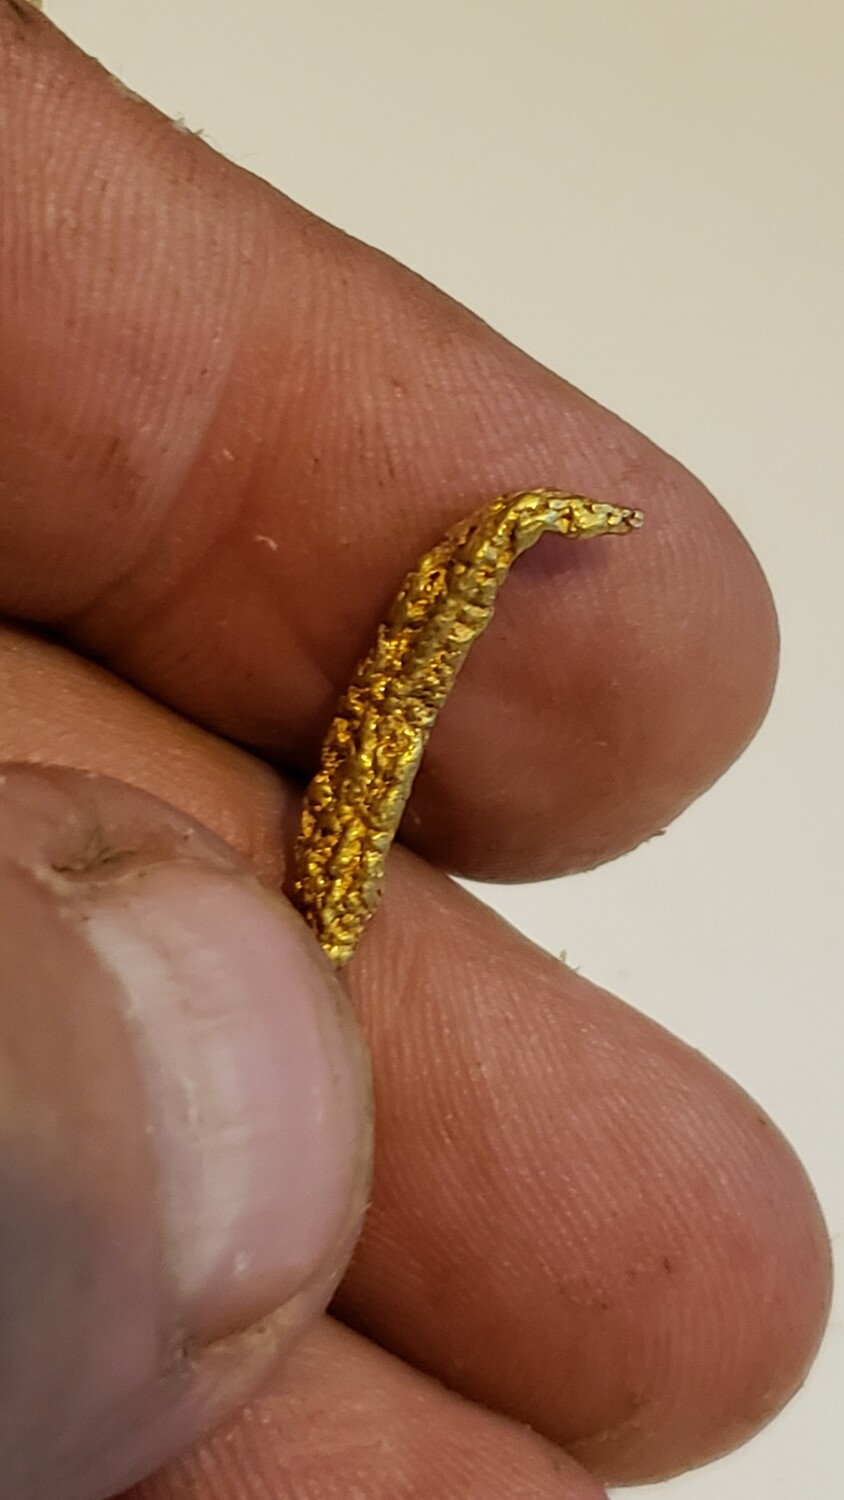 Very rare 1.30 gram wire gold specimen